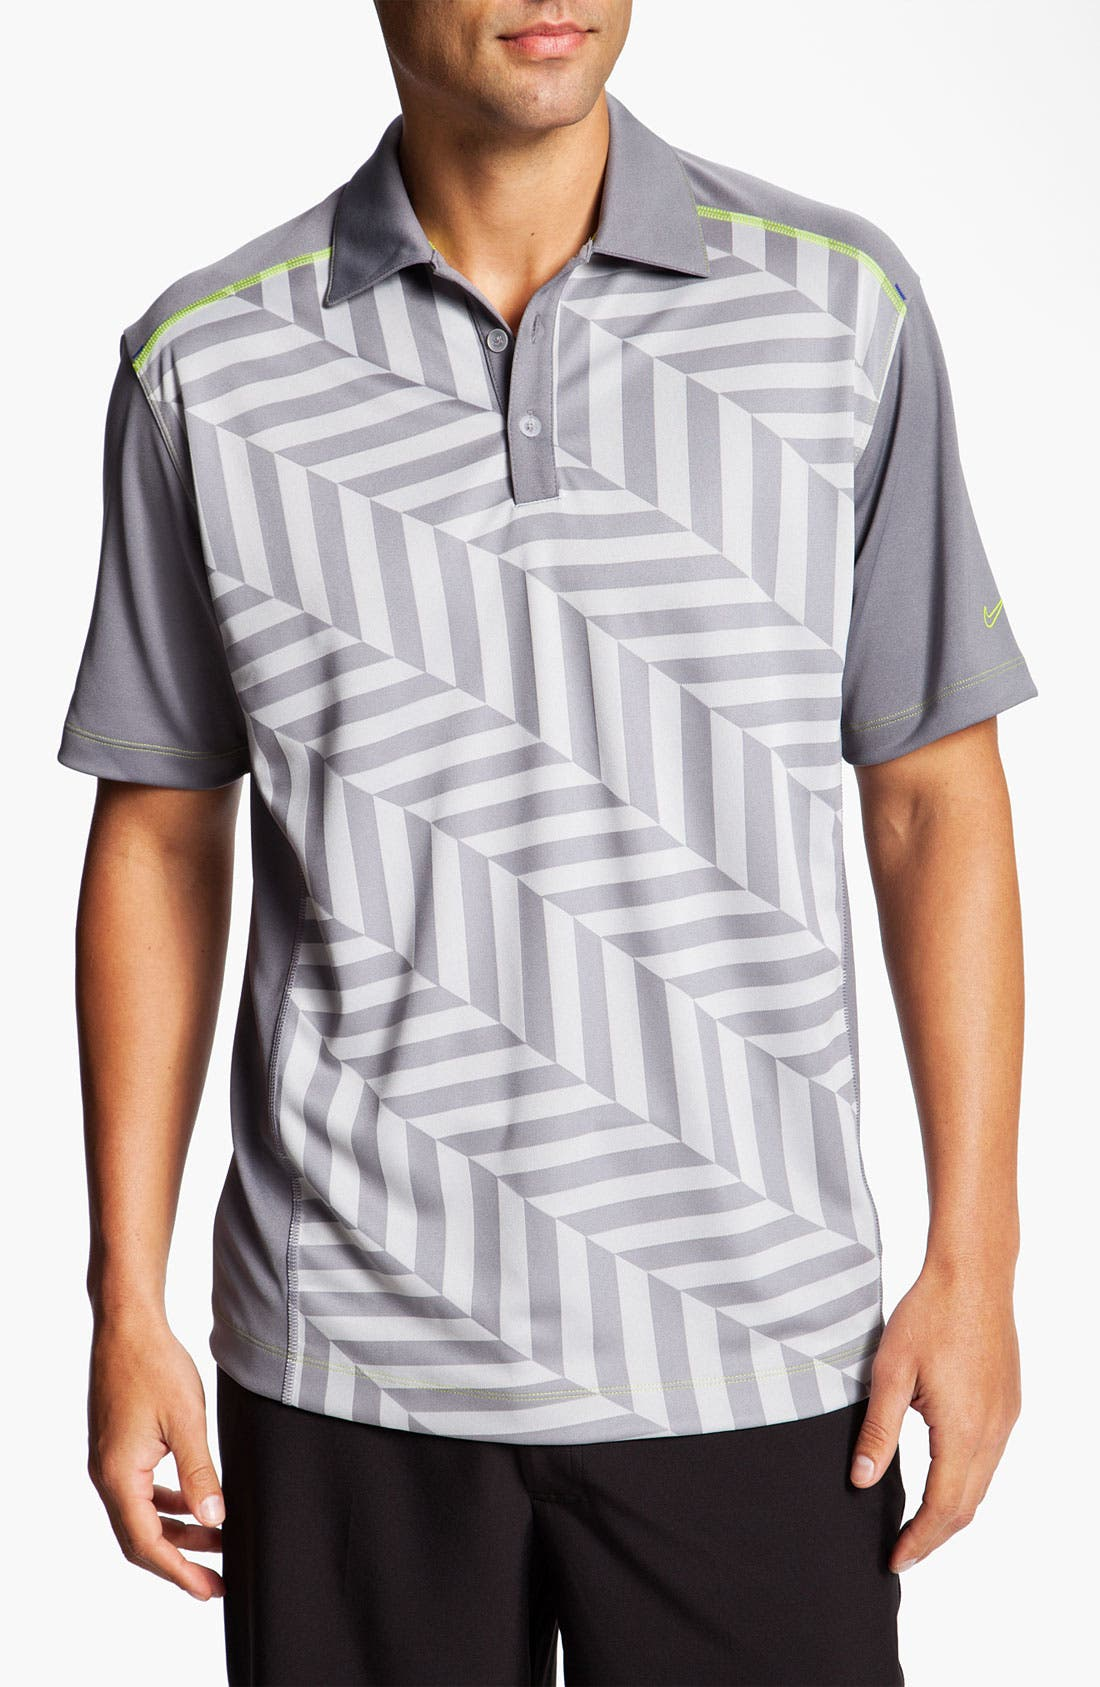 Main Image - Nike Golf 'Herringbone Jacquard' Dri-FIT Polo